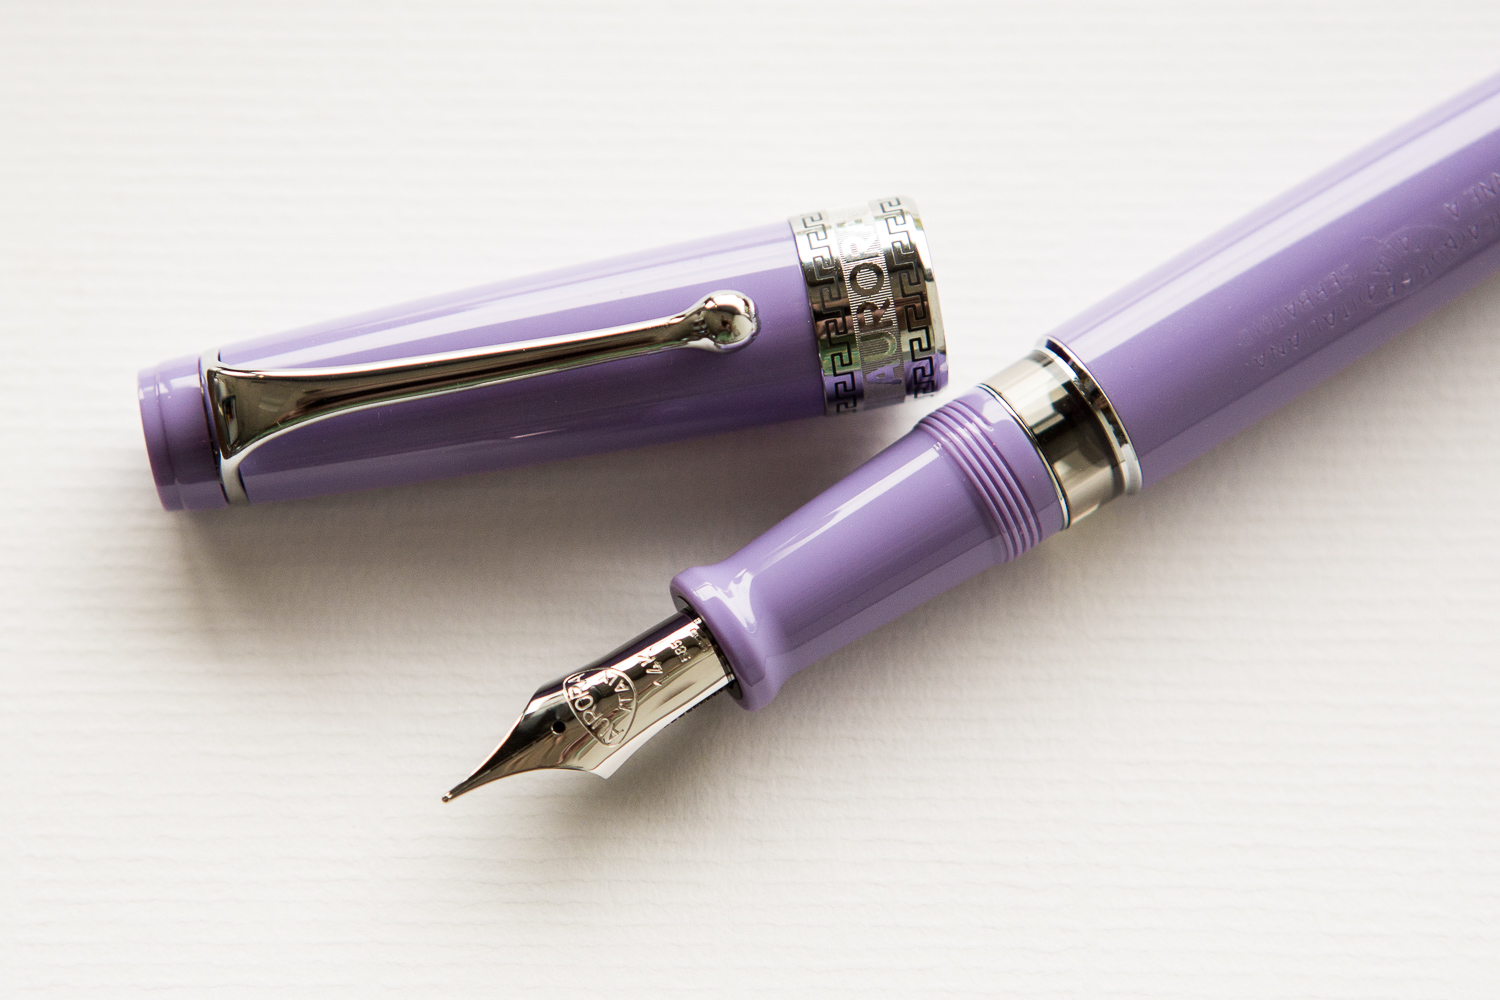 Aurora Optima flex in a summery spread of pink, purple, and orange fountain pens and accessories.